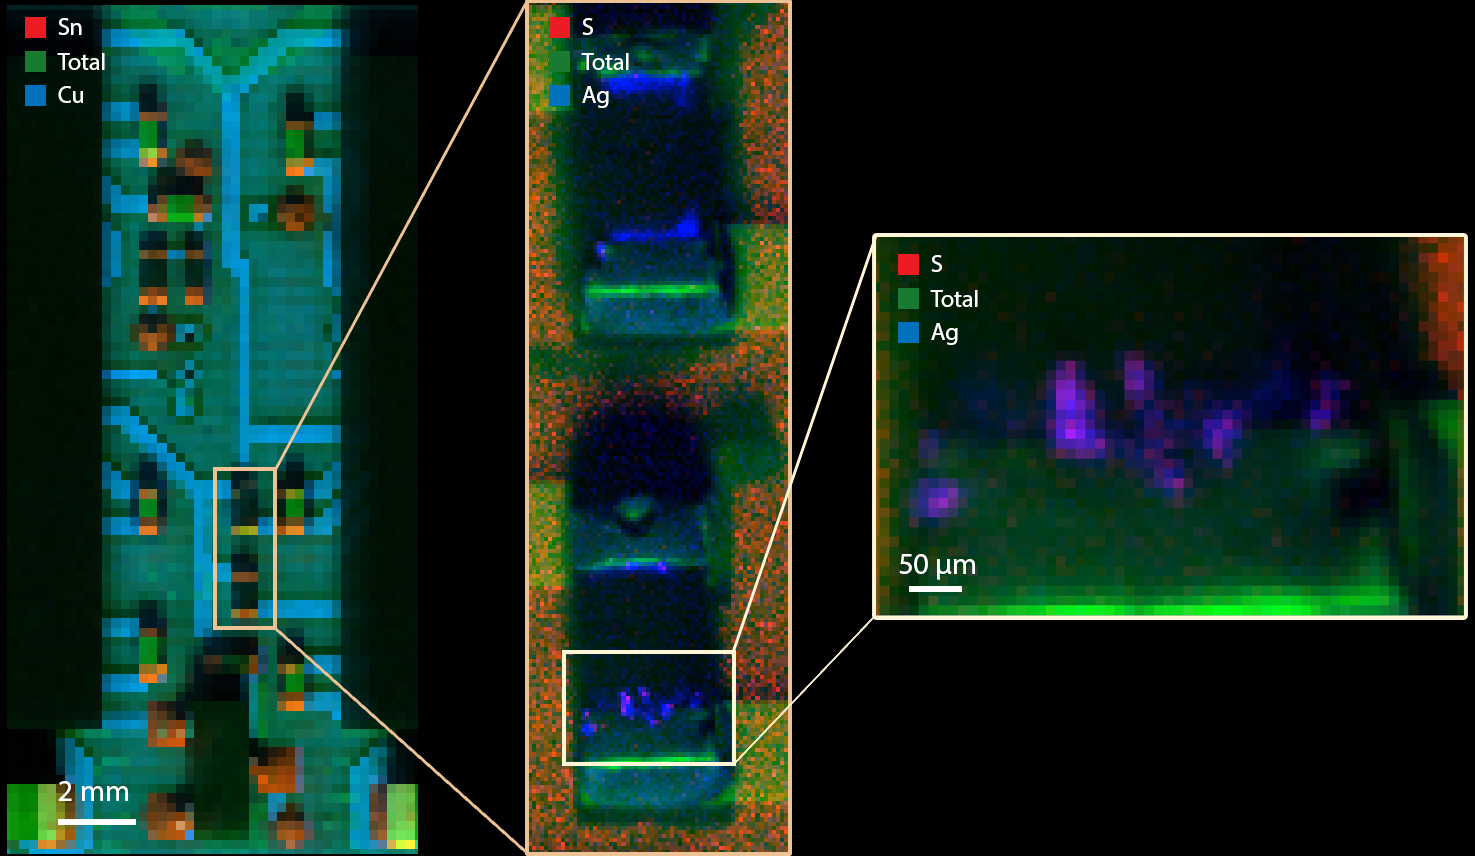 Contaminants and Particle Migration - Migration of elements can affect device performance. The AttoMap enables microns-scale, sub-ppm quantification for spatially resolved elemental distribution.